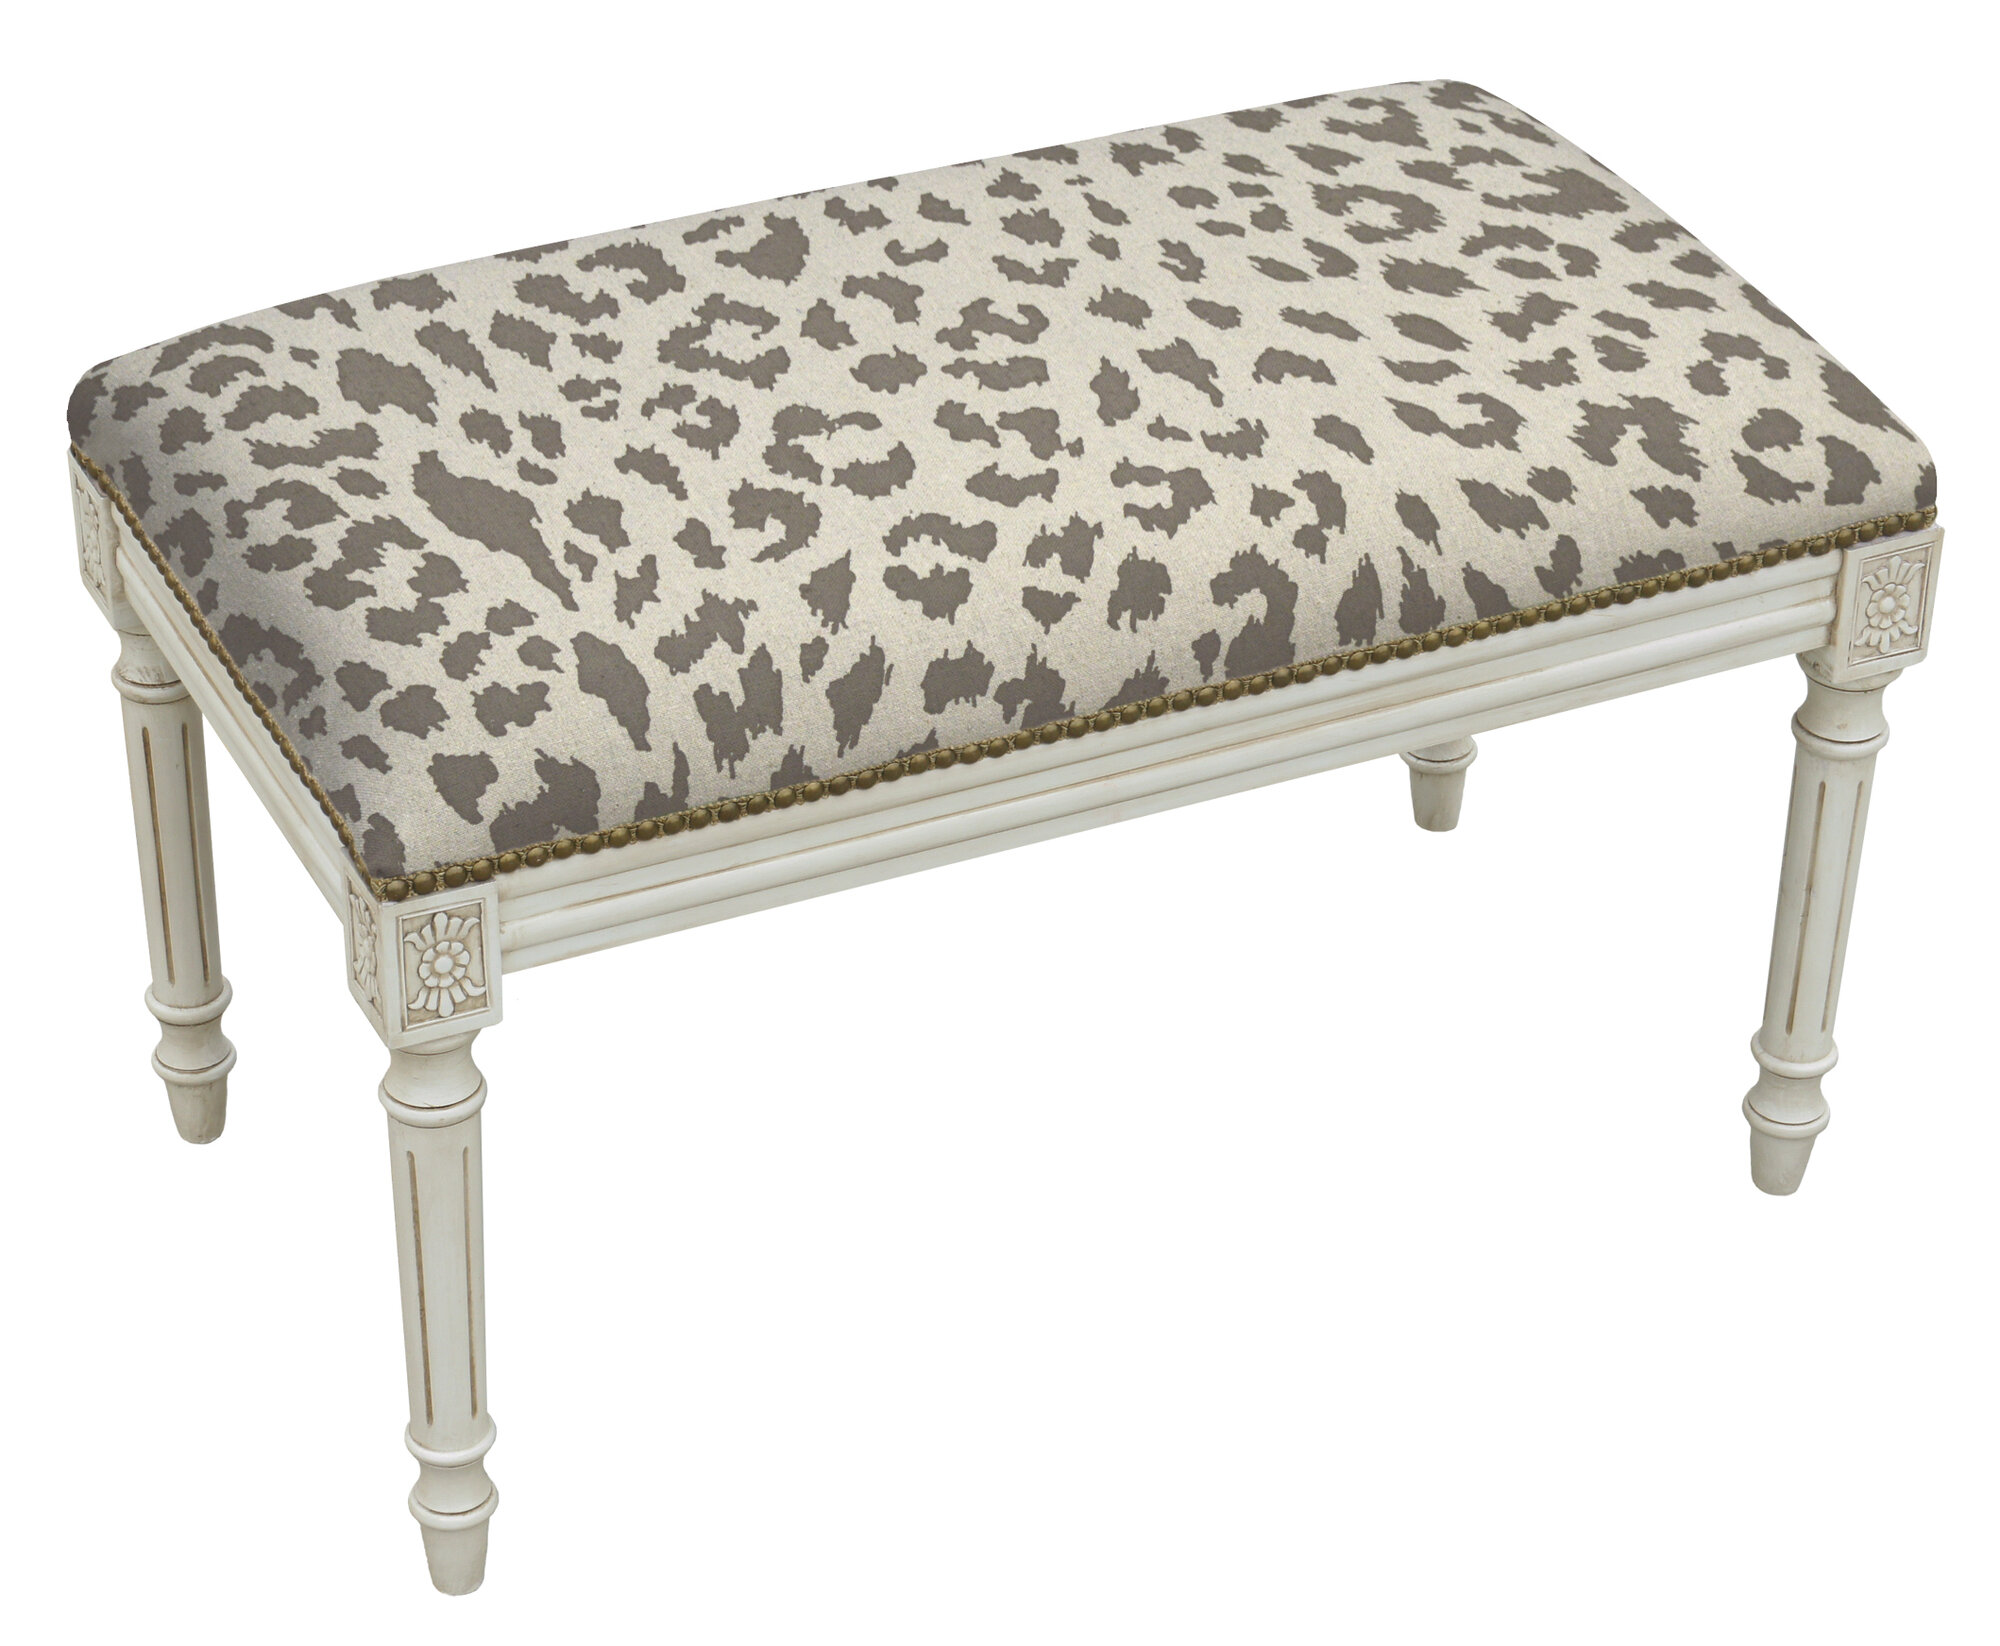 123 creations animal print upholstered and wood bench Leopard print bench